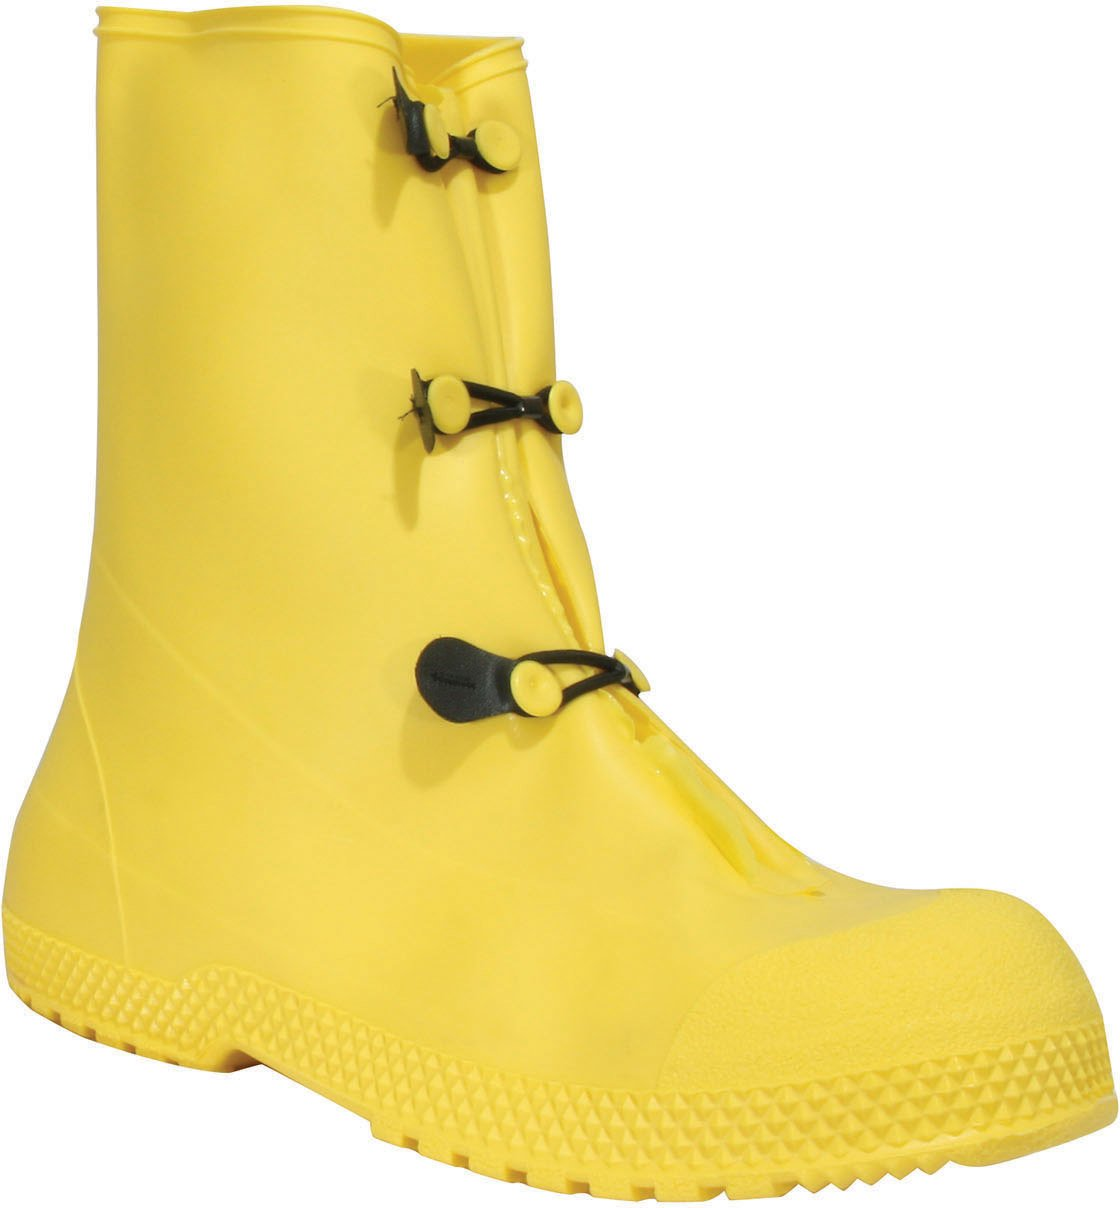 Servus SuperFit 12 PVC Dual Compound Men's Overboots, Yellow (11926-Bagged) Sperian Protection Group 11926-YLW-MED